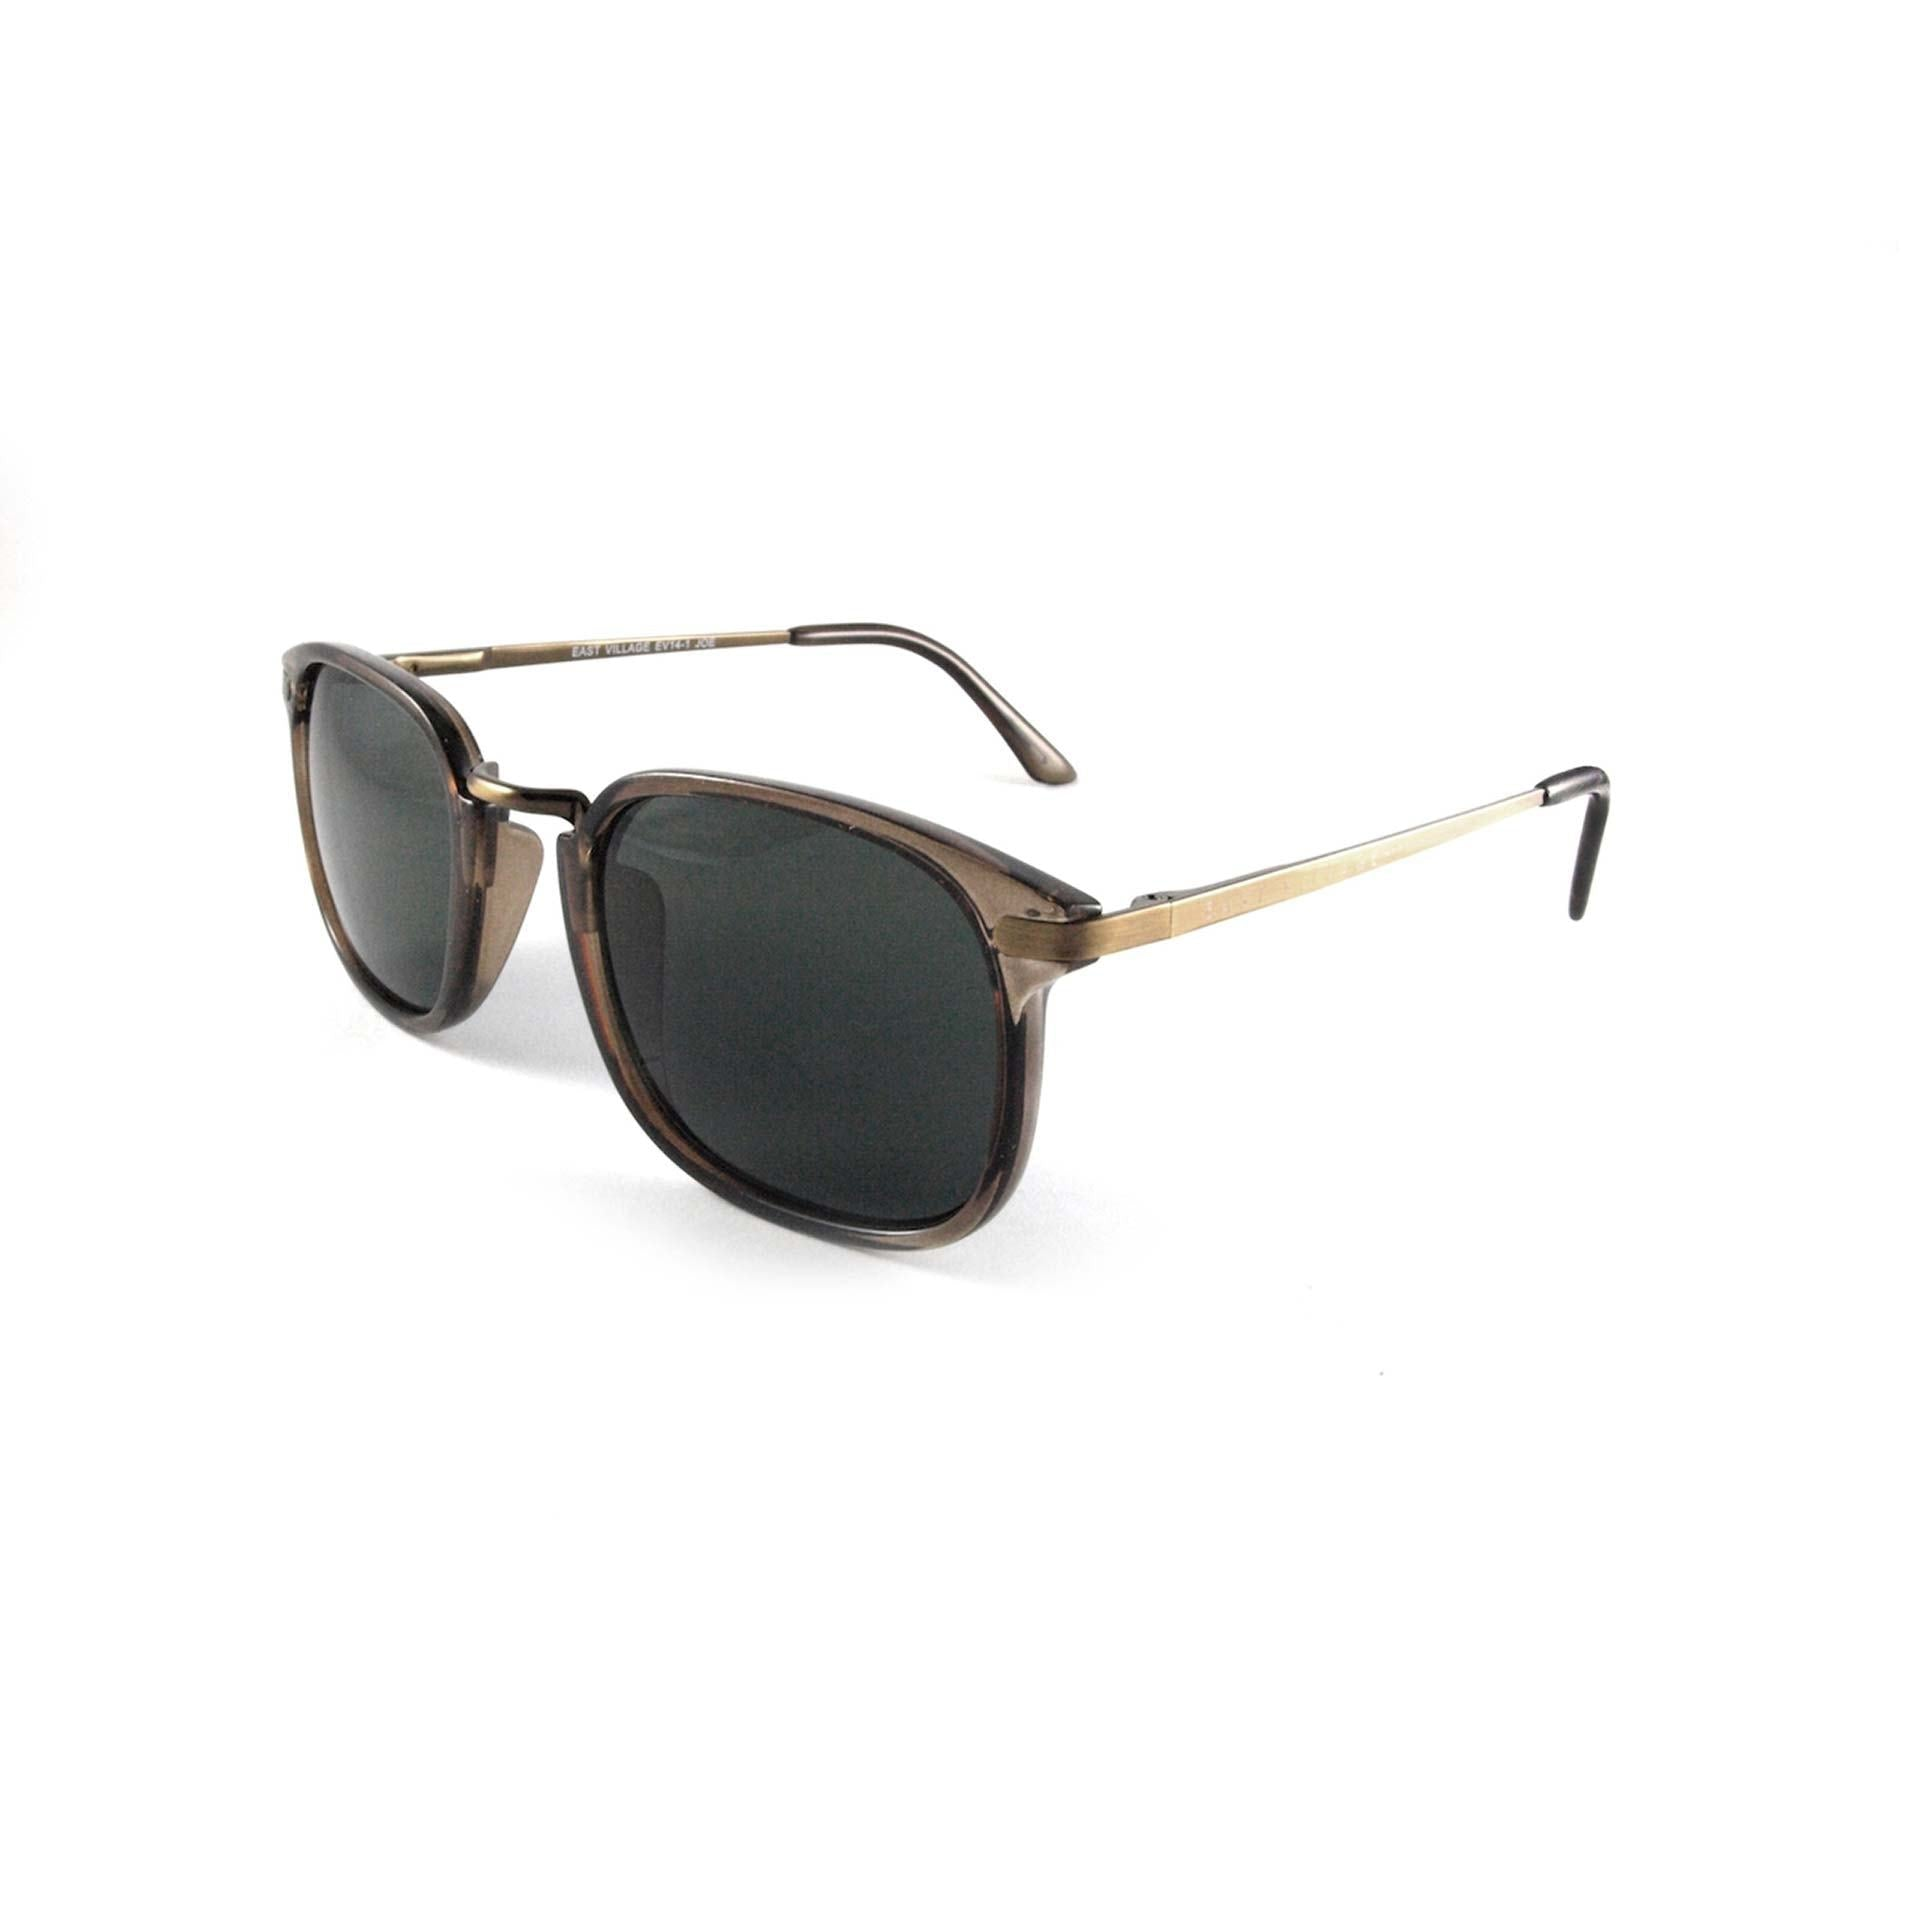 Square 'Joe' Metal Bridge Crystal Brown Sunglasses